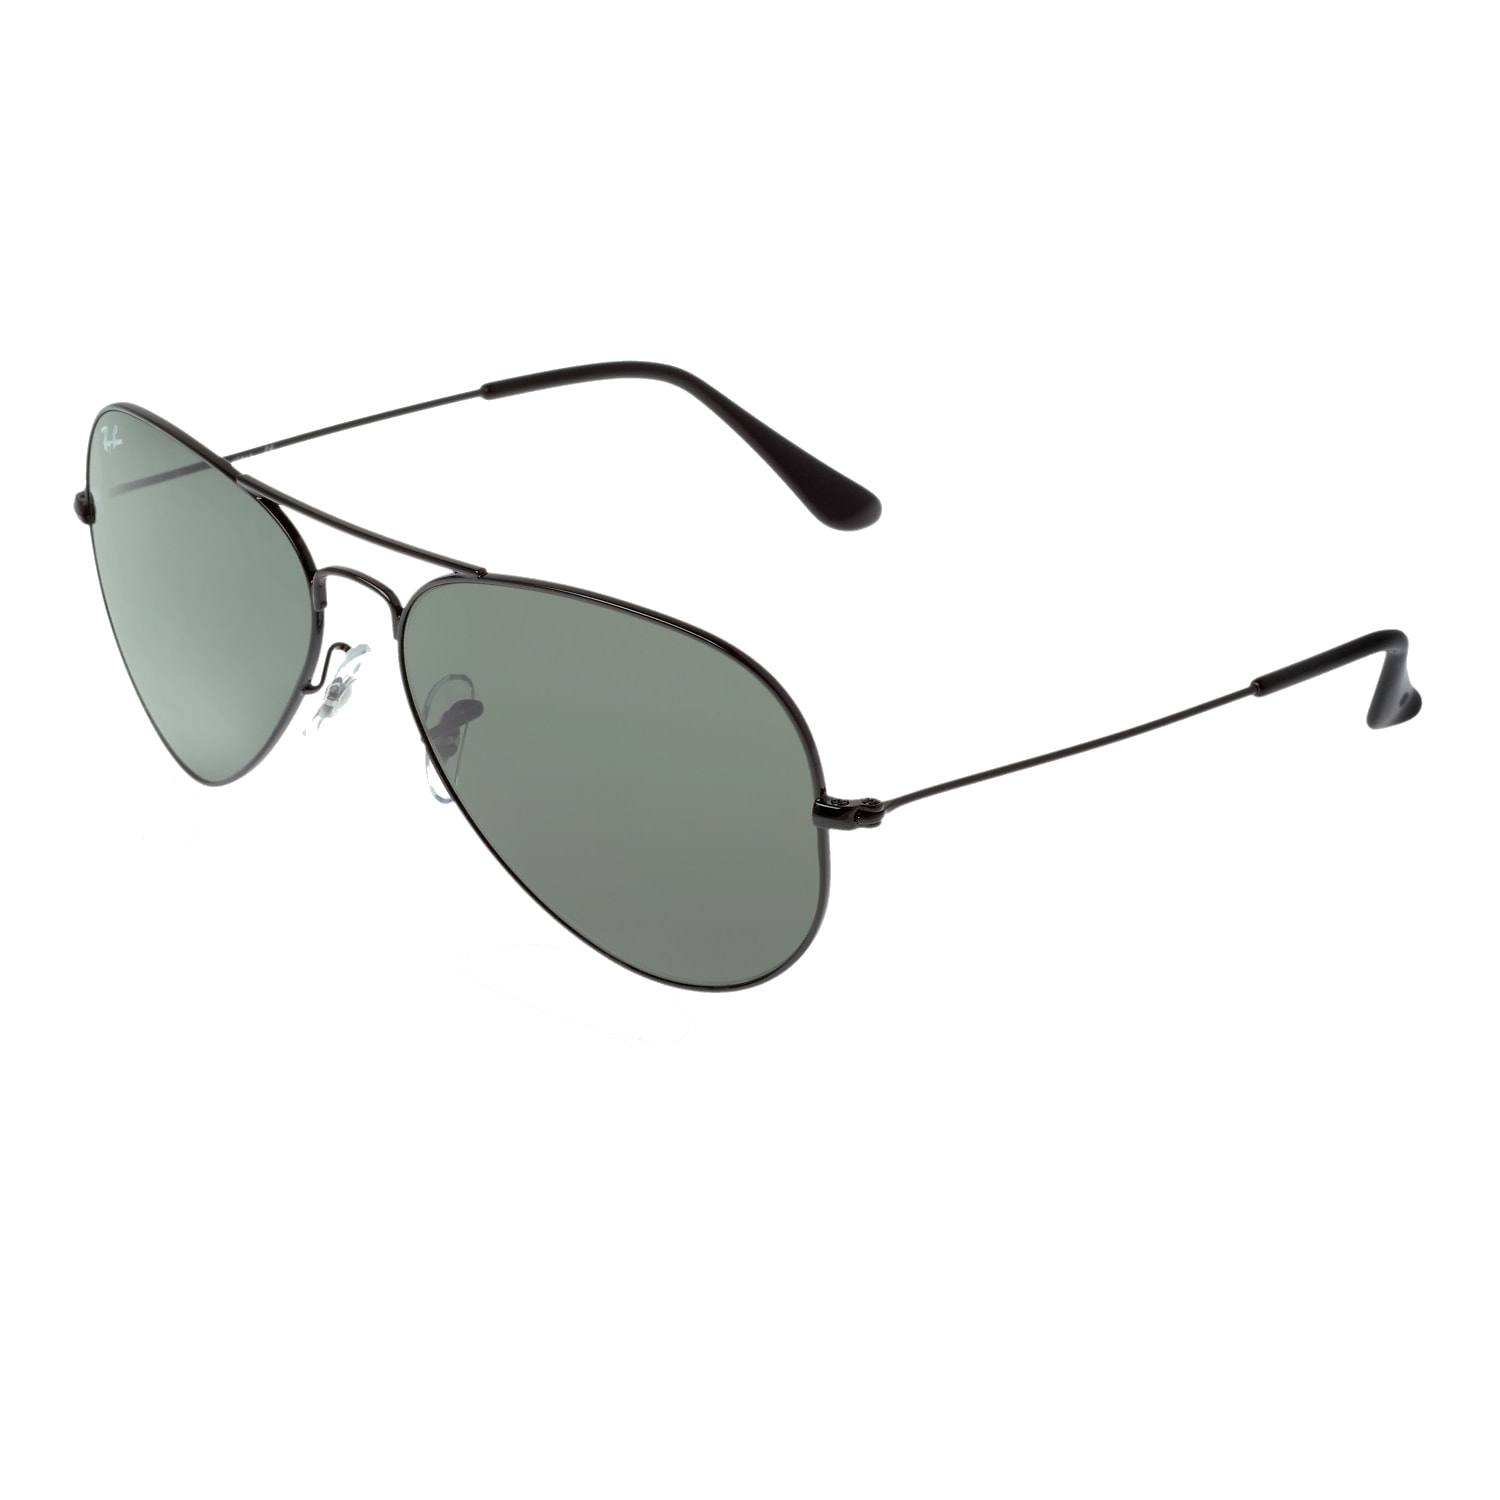 Shop Ray-Ban RB3025 58mm Aviator Sunglasses - Black - Free Shipping Today -  Overstock.com - 8657161